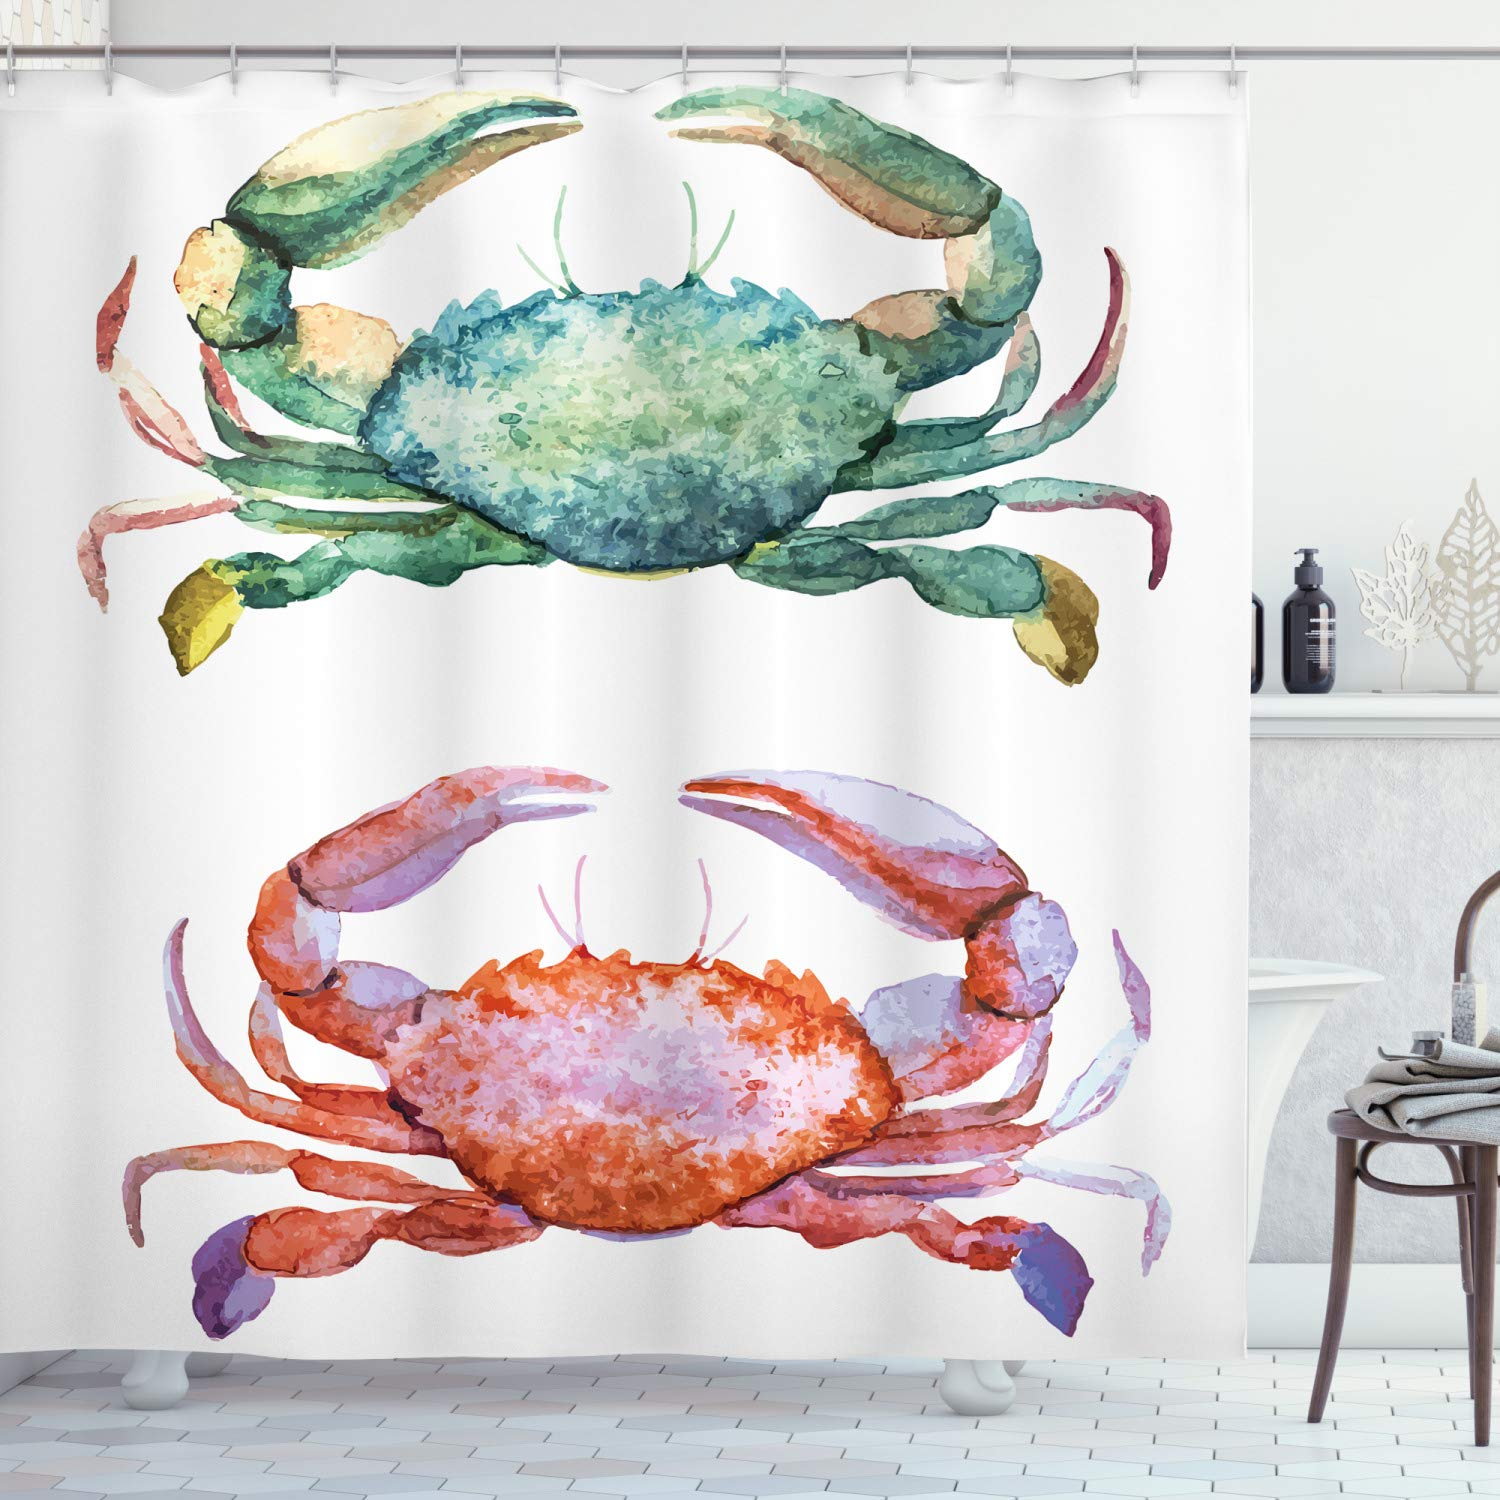 """Ambesonne Crabs Shower Curtain, Watercolor Style Effect Sea Animal Theme Pattern Illustration of Crabs Artwork Print, Cloth Fabric Bathroom Decor Set with Hooks, 75"""" Long, Orange Teal"""